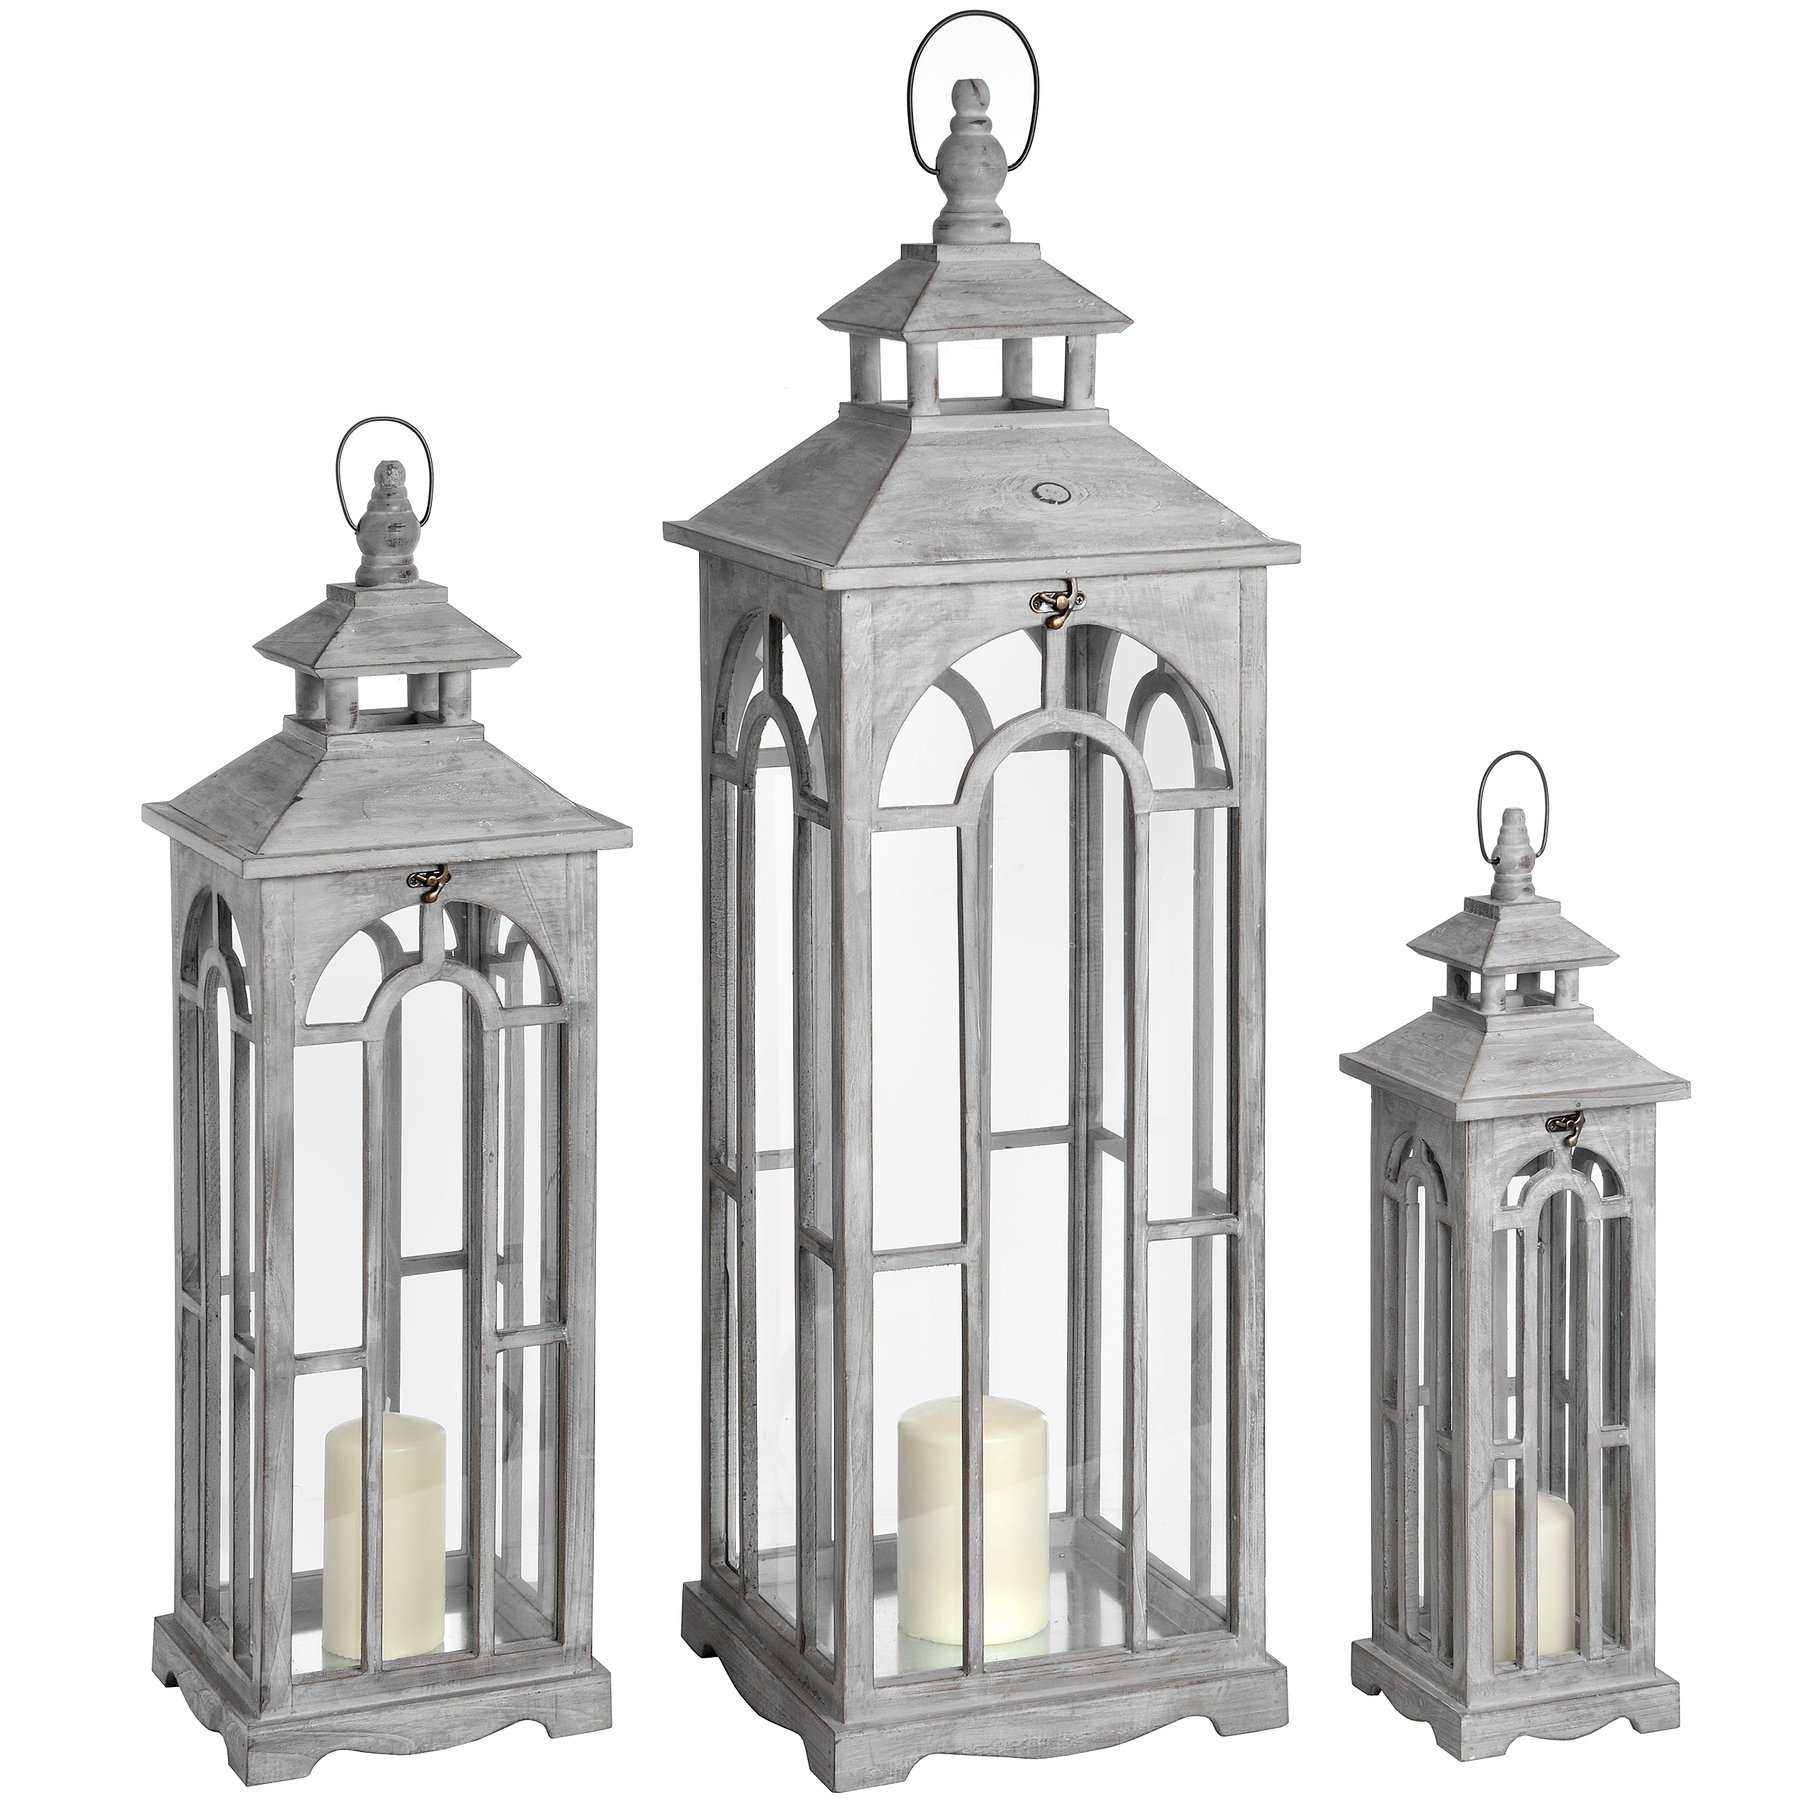 set of three wooden lanterns with archway design from hill interiors. Black Bedroom Furniture Sets. Home Design Ideas